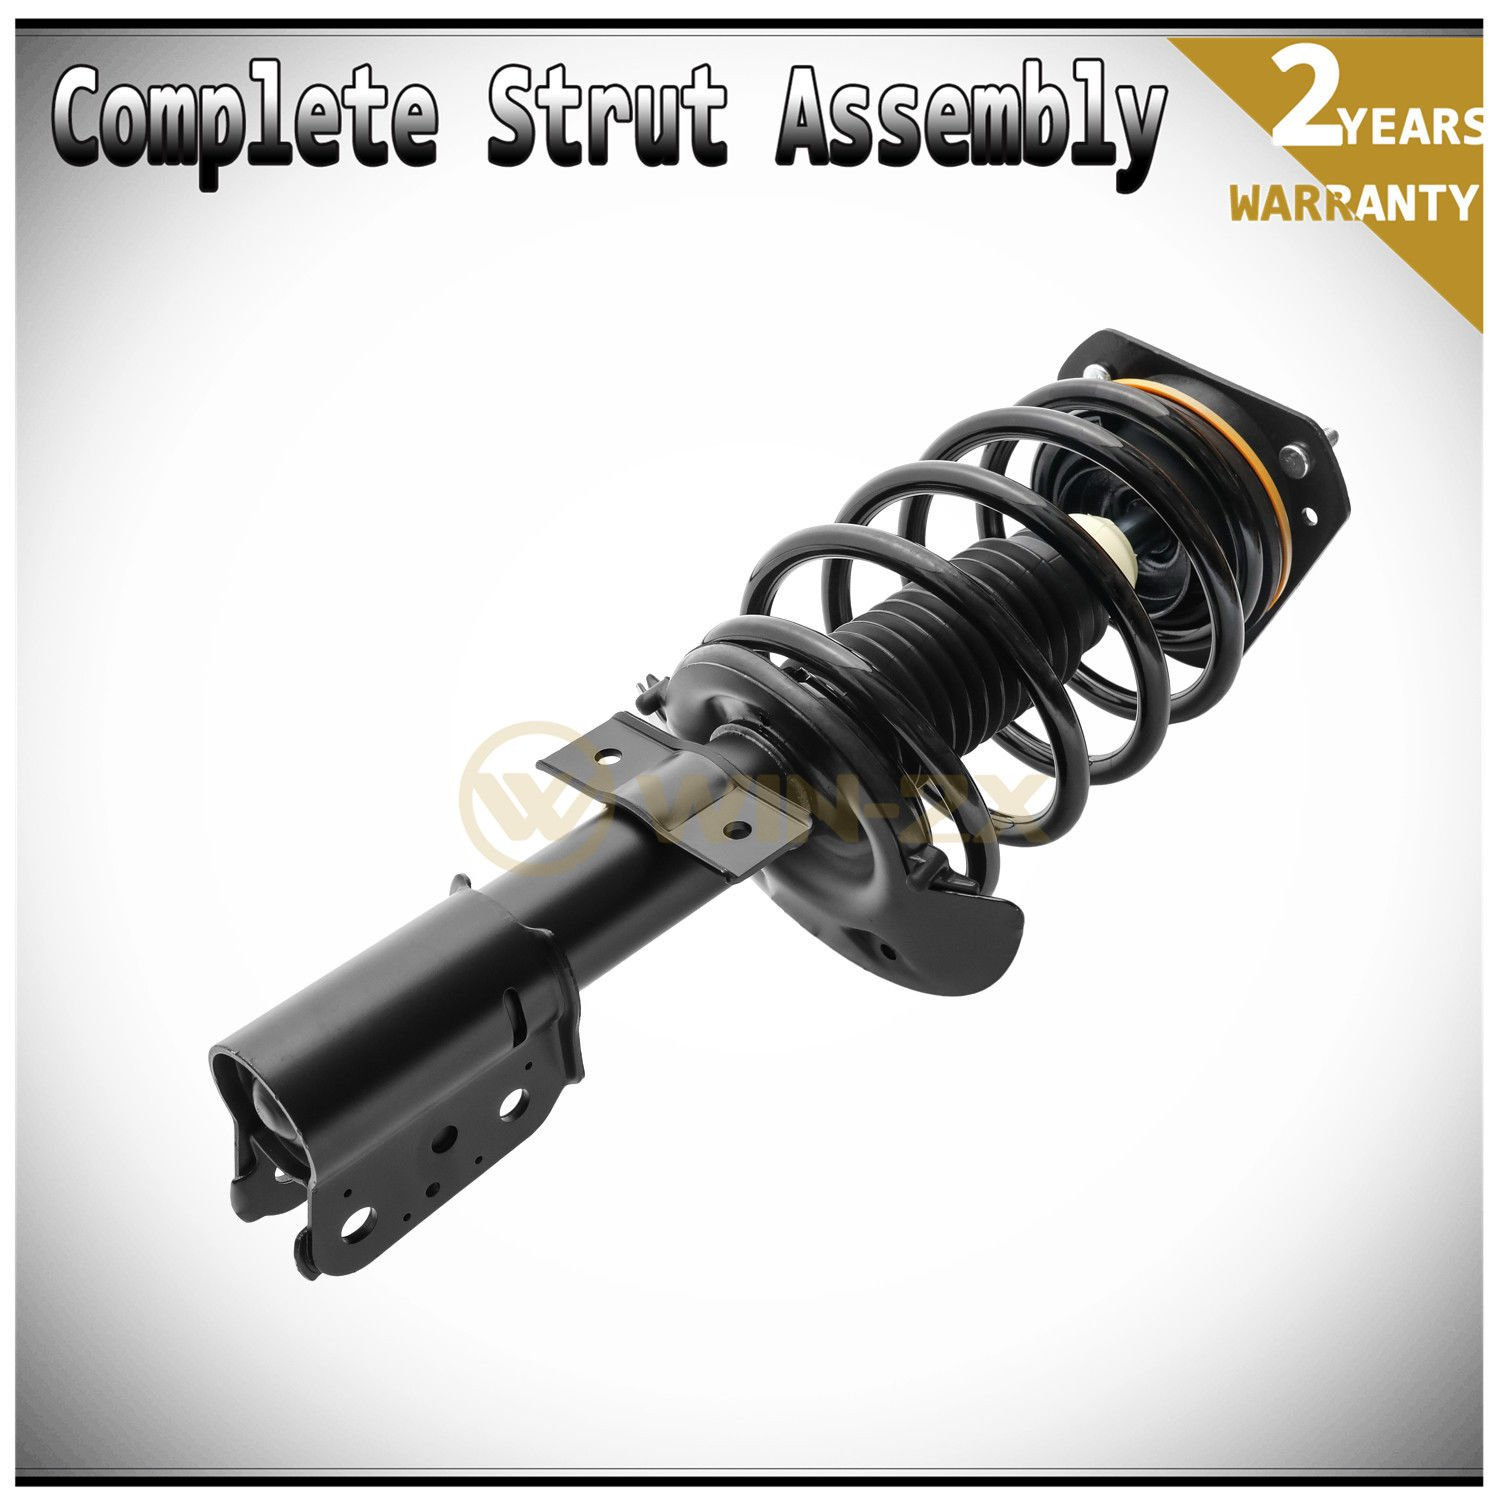 WIN-2X New 1pc Front Left or Right Side Quick Complete Suspension Shock Strut /& Coil Spring Assembly Fit 04-08 Pontiac Grand Prix With 16 /& 17 Wheels Only